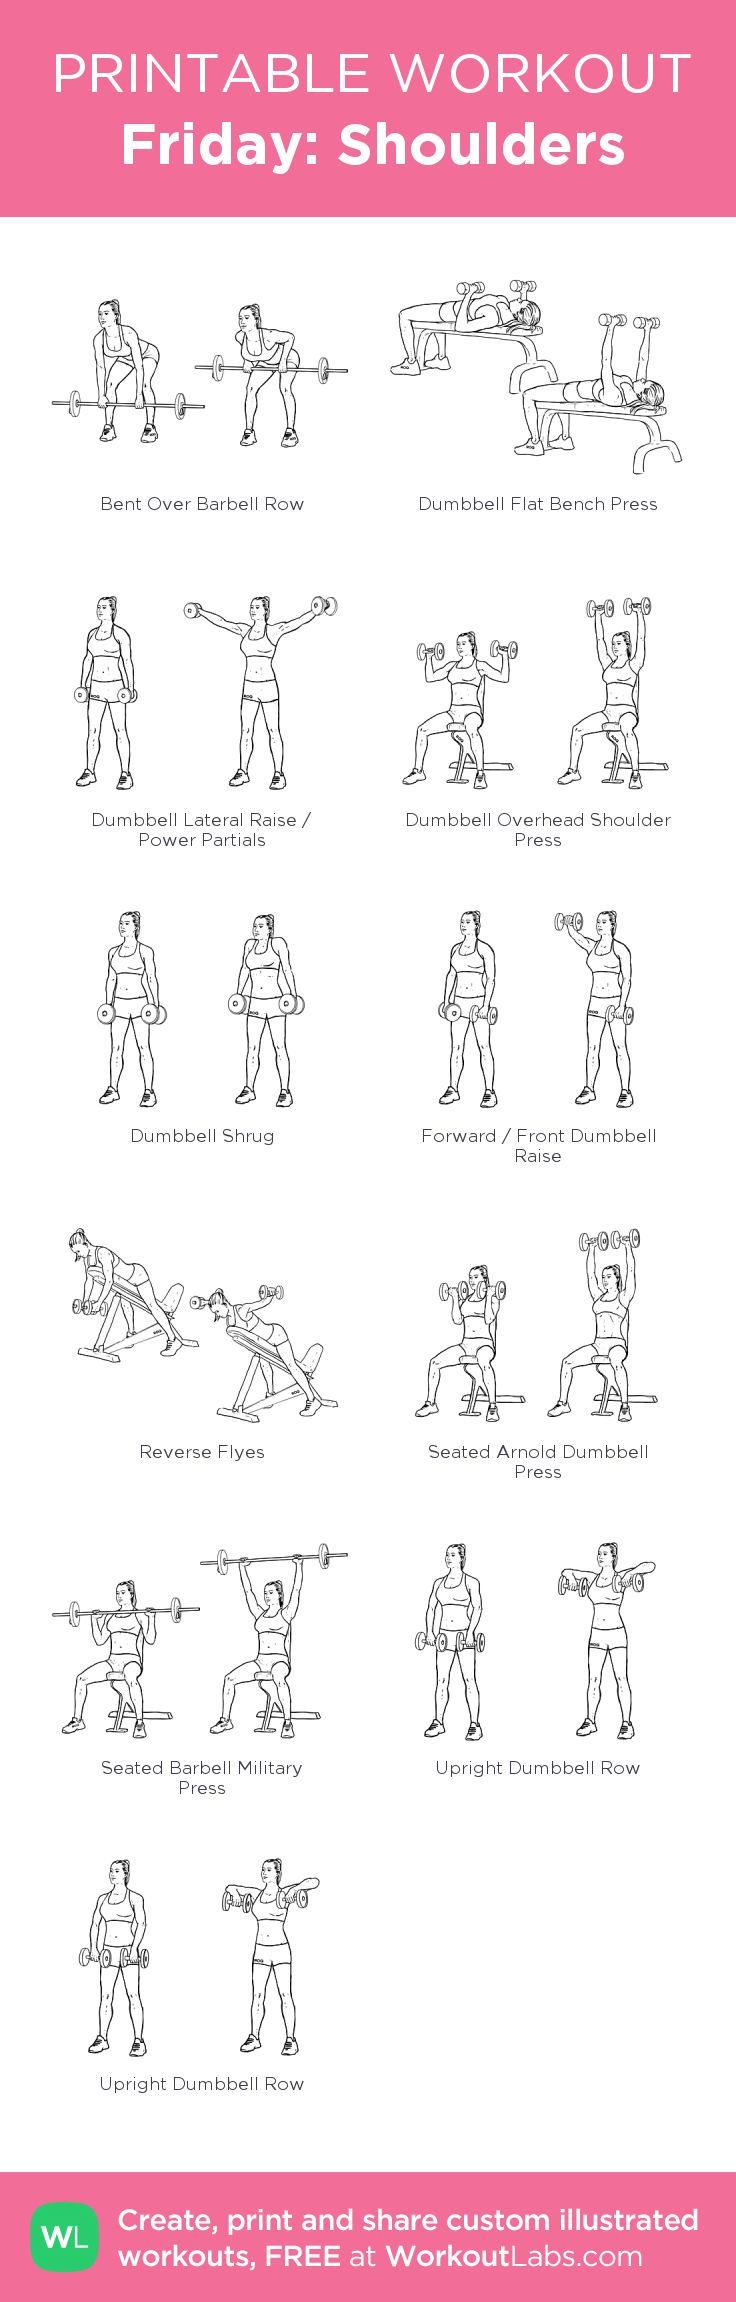 Friday: Shoulders:my visual workout created at WorkoutLabs.com • Click through to customize and download as a FREE PDF! #customworkout